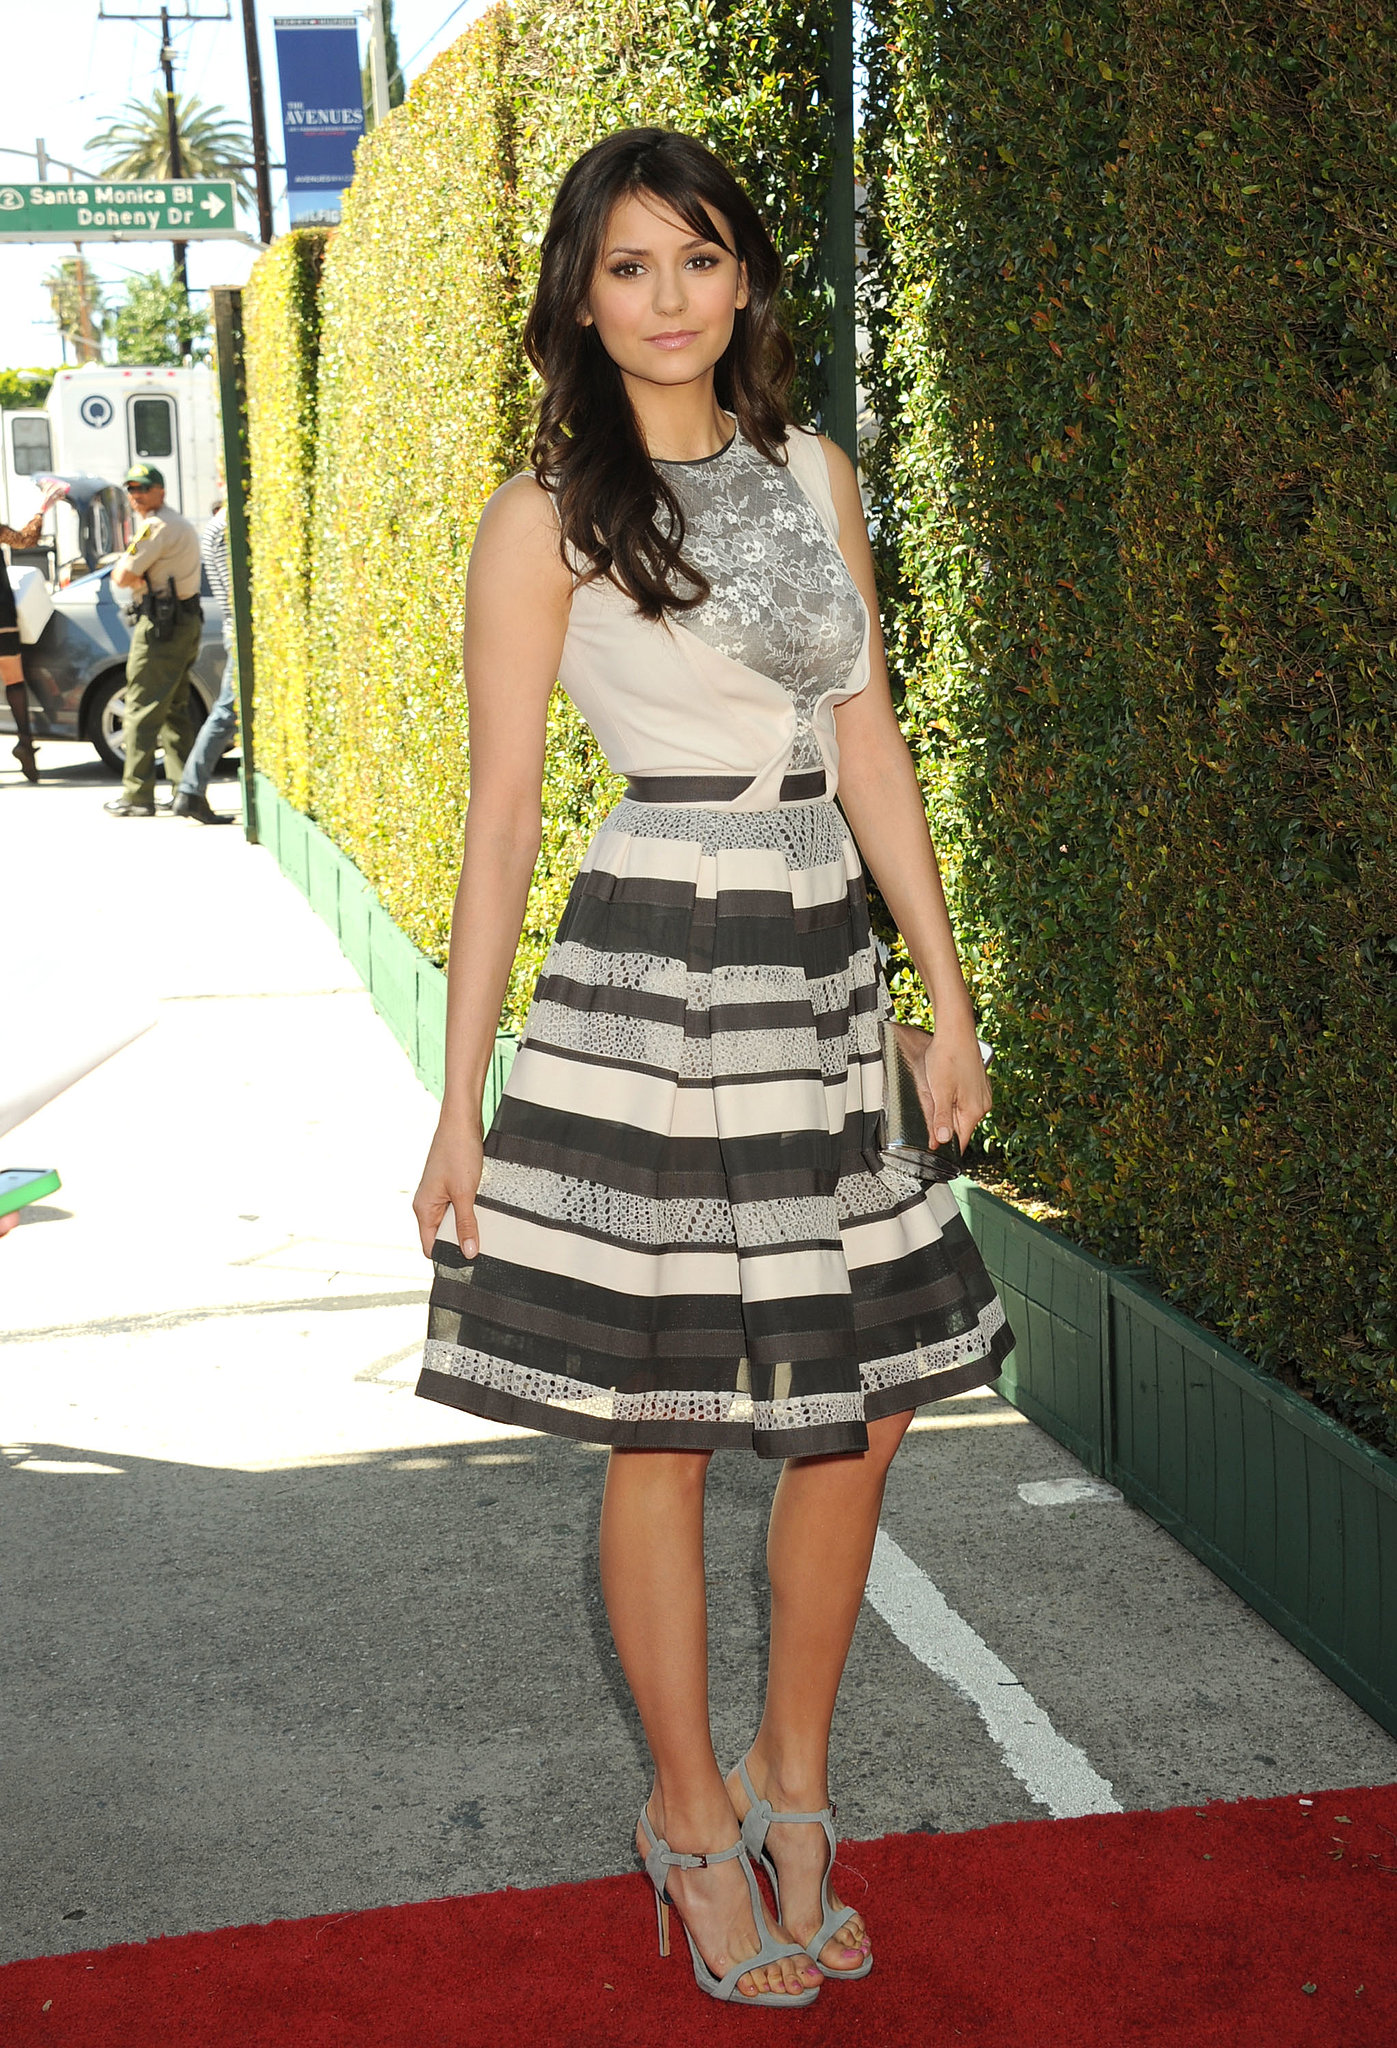 For the 10th Annual John Varvatos Stuart House Benefit, Nina Dobrev wore a lace-and-striped Elie Saab fit-and-flare with gray suede t-strap sandals and a silver metallic clutch.